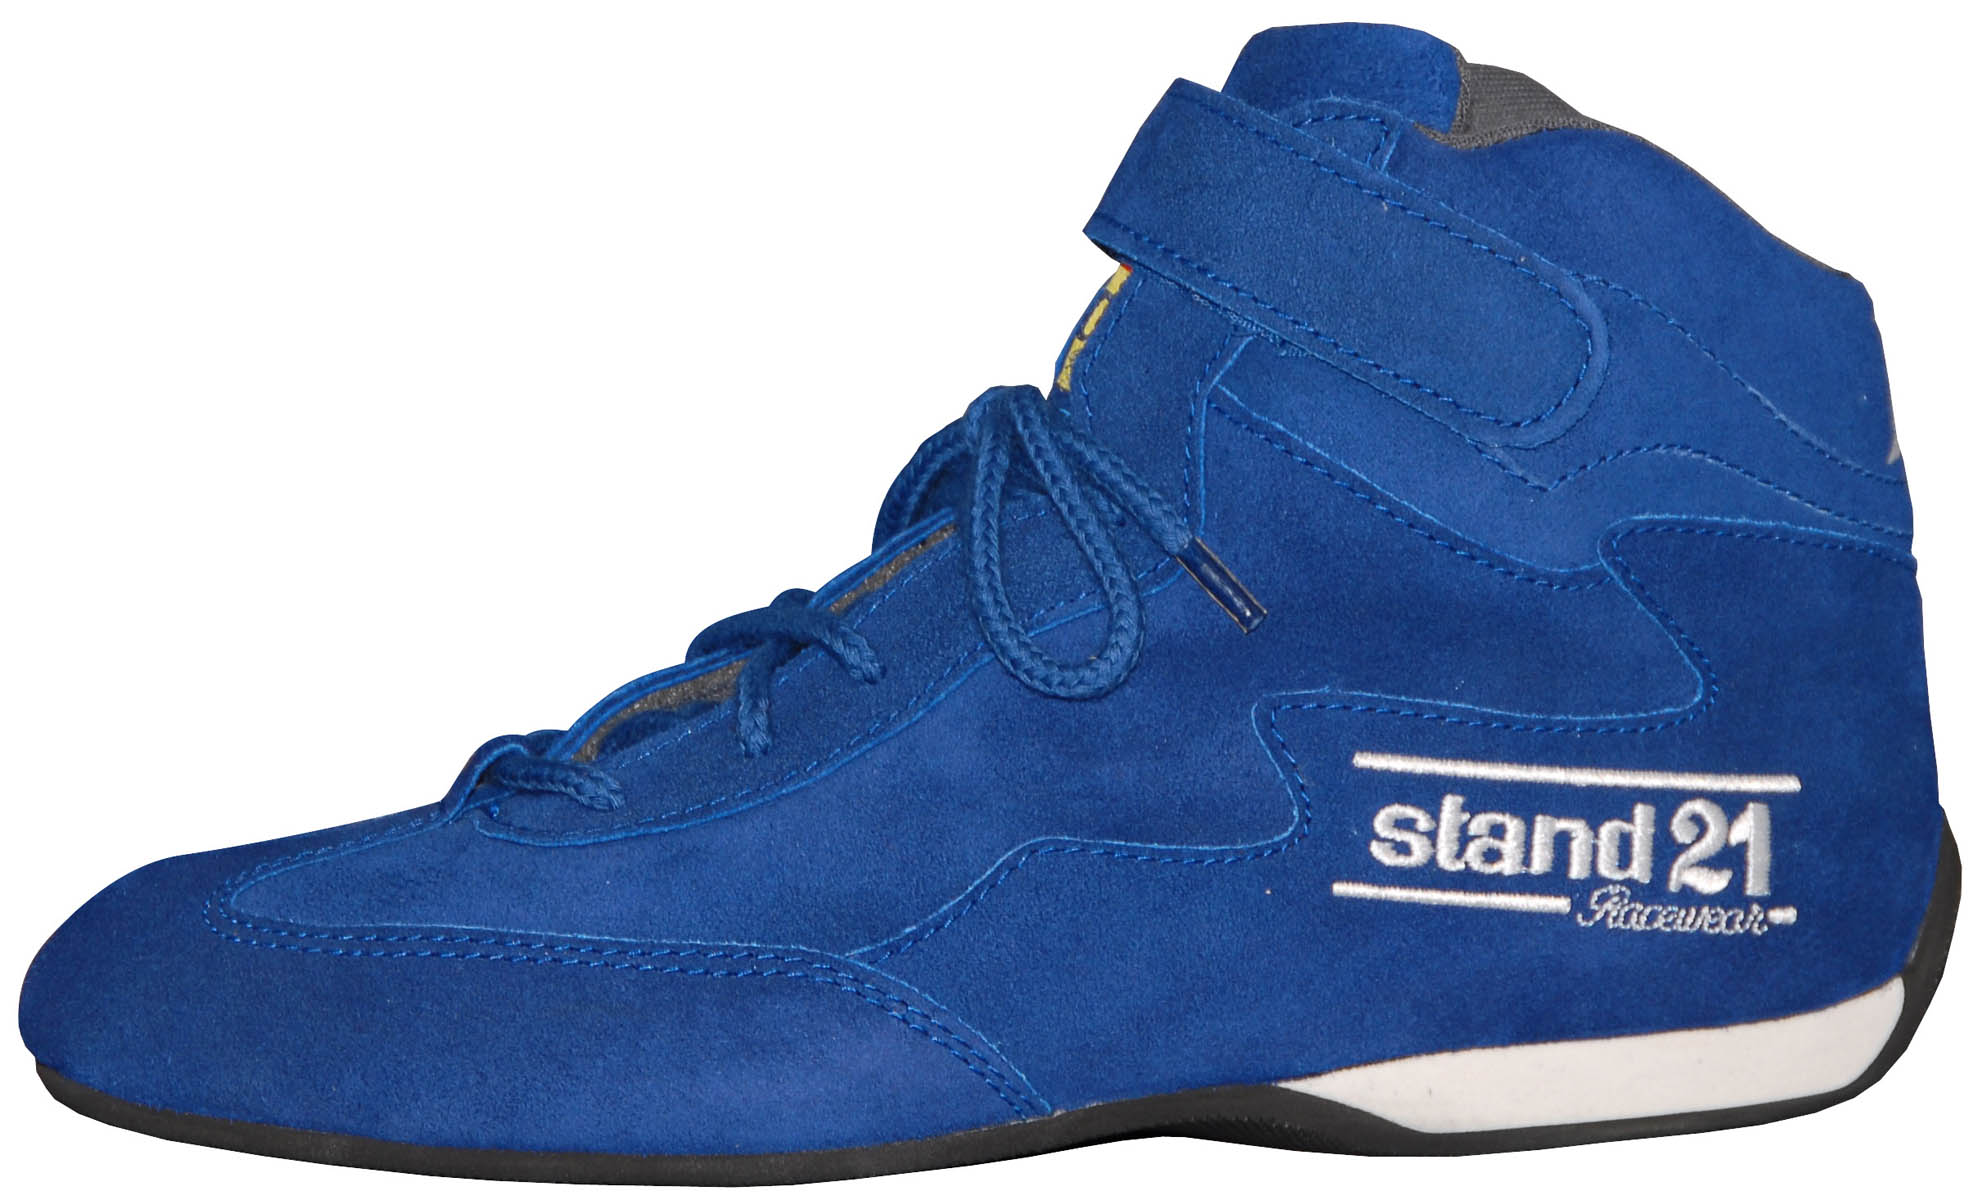 Bottines Daytona II bleu roi de stock